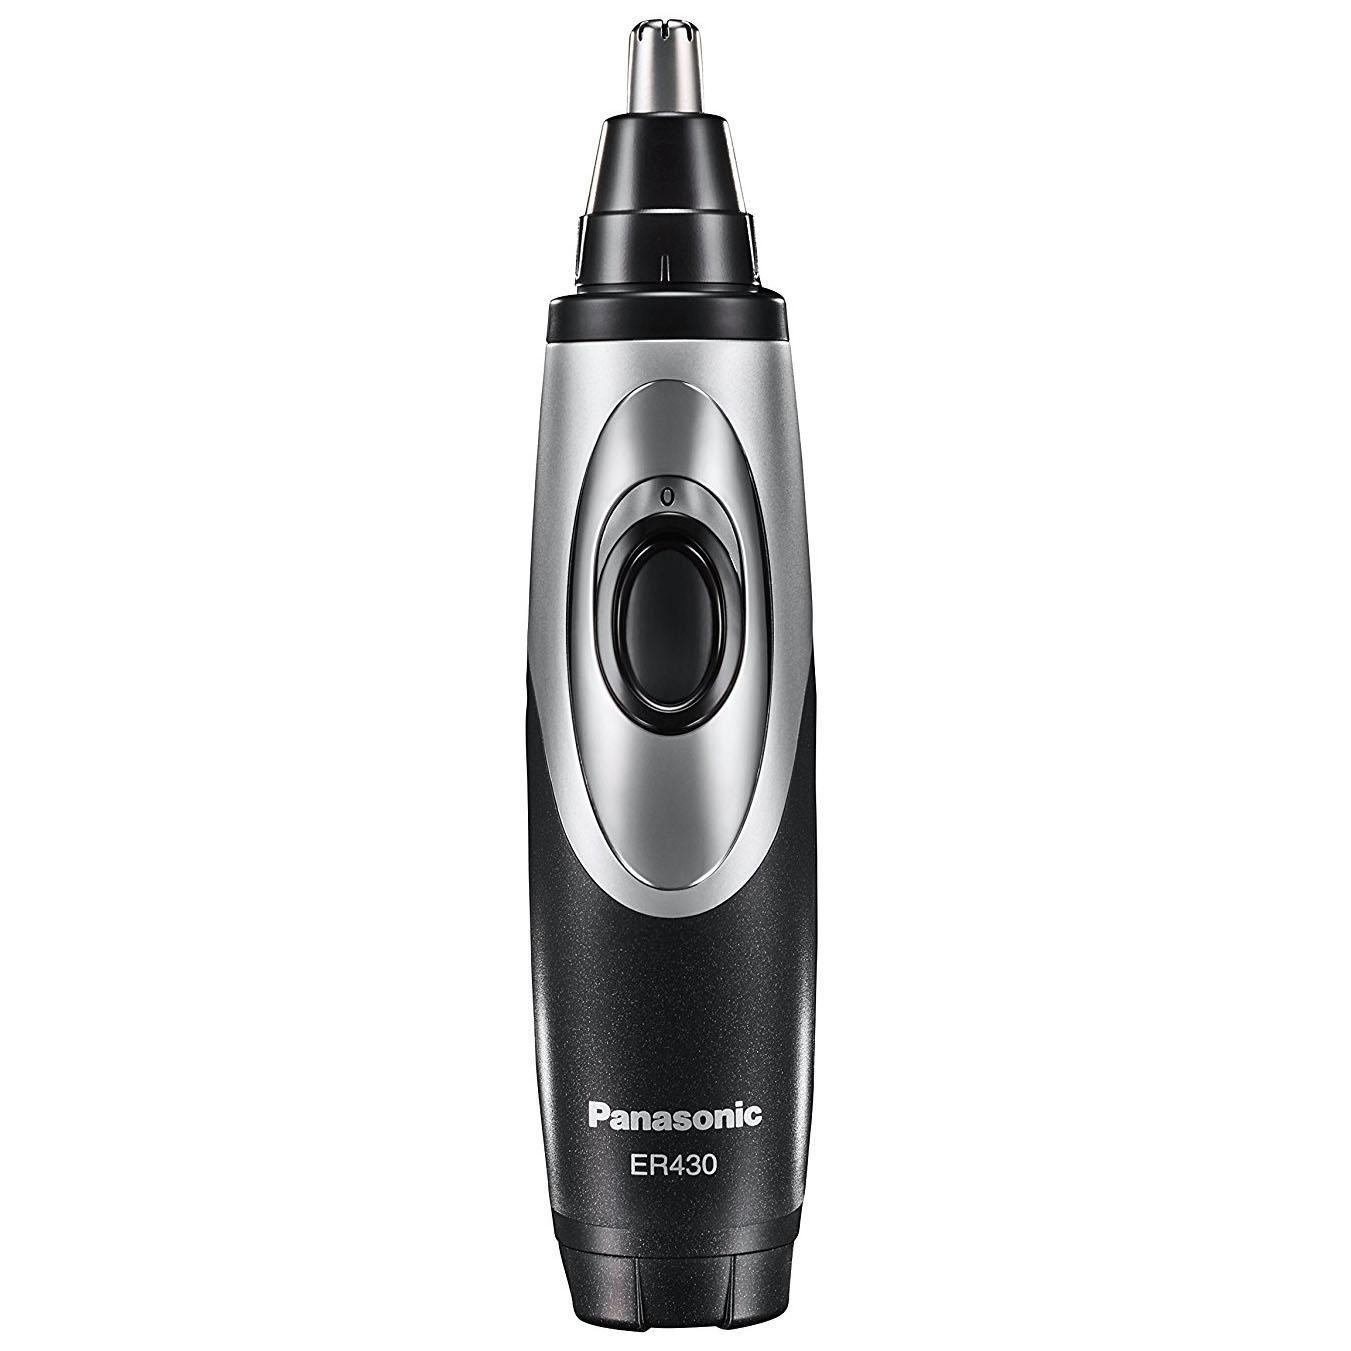 Panasonic ER430K Ear and Nose Trimmer with Vacuum